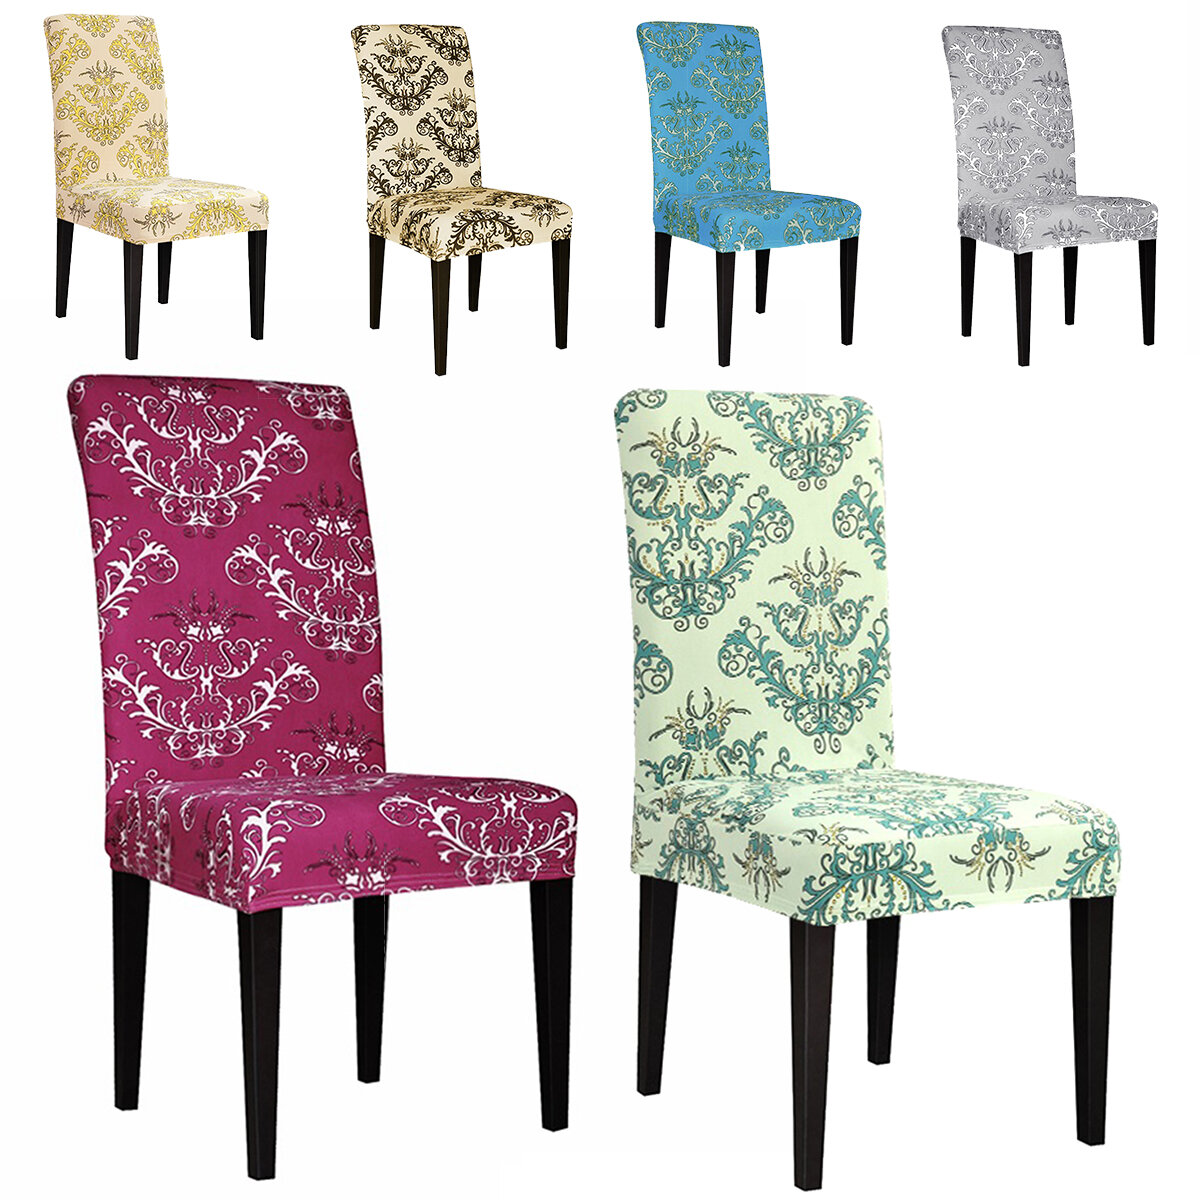 Dining Room Chair Covers Slipcovers Stretch Wedding Banquet Seat Cover Removable